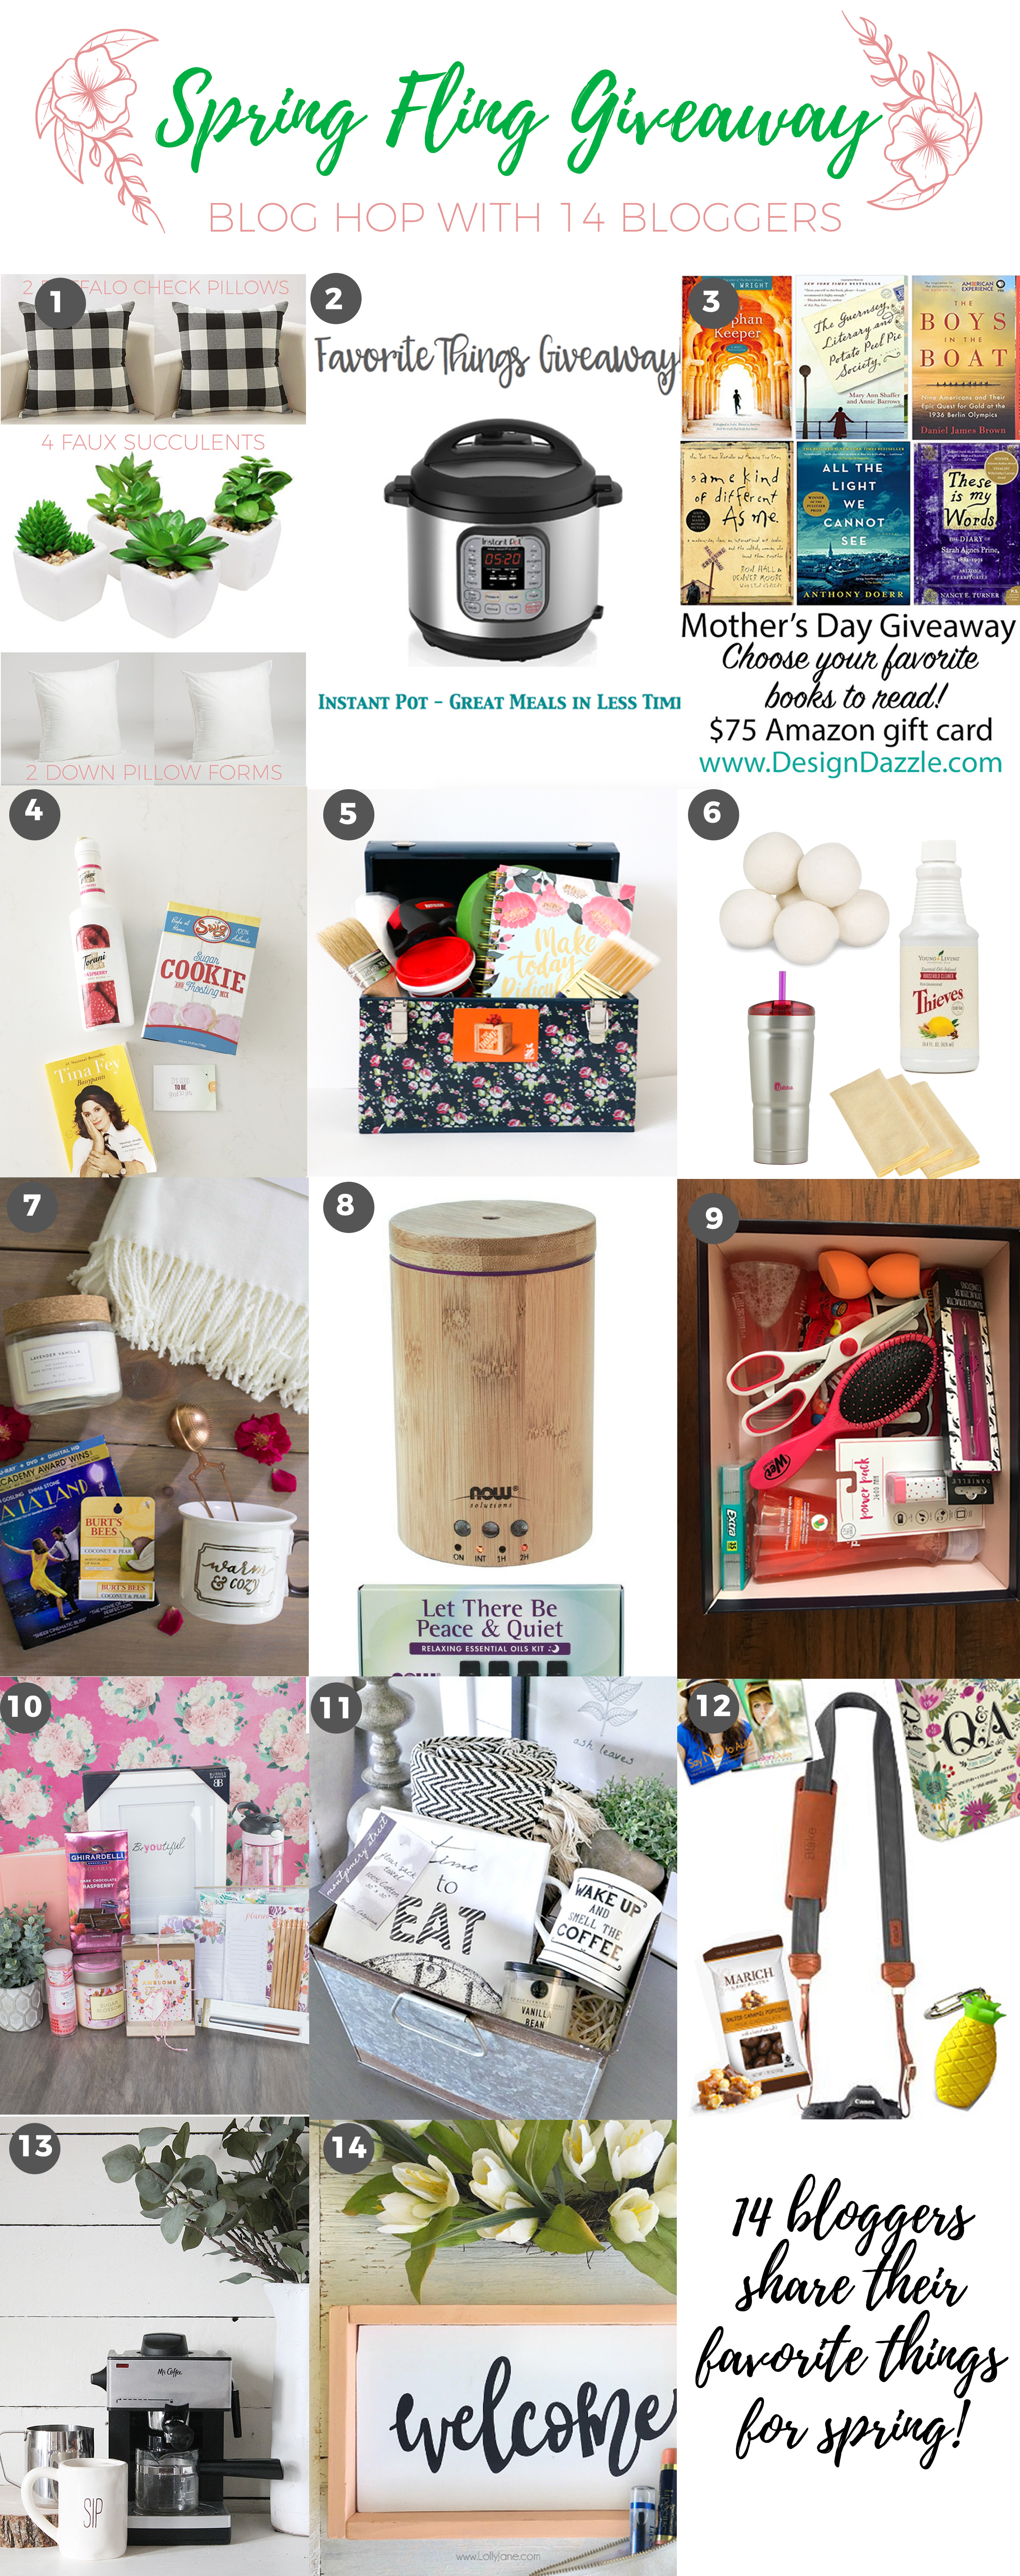 spring fling giveaway collage Gift Ideas for Mother's Day + Spring Cleaning Giveaway 1 spring cleaning giveaway